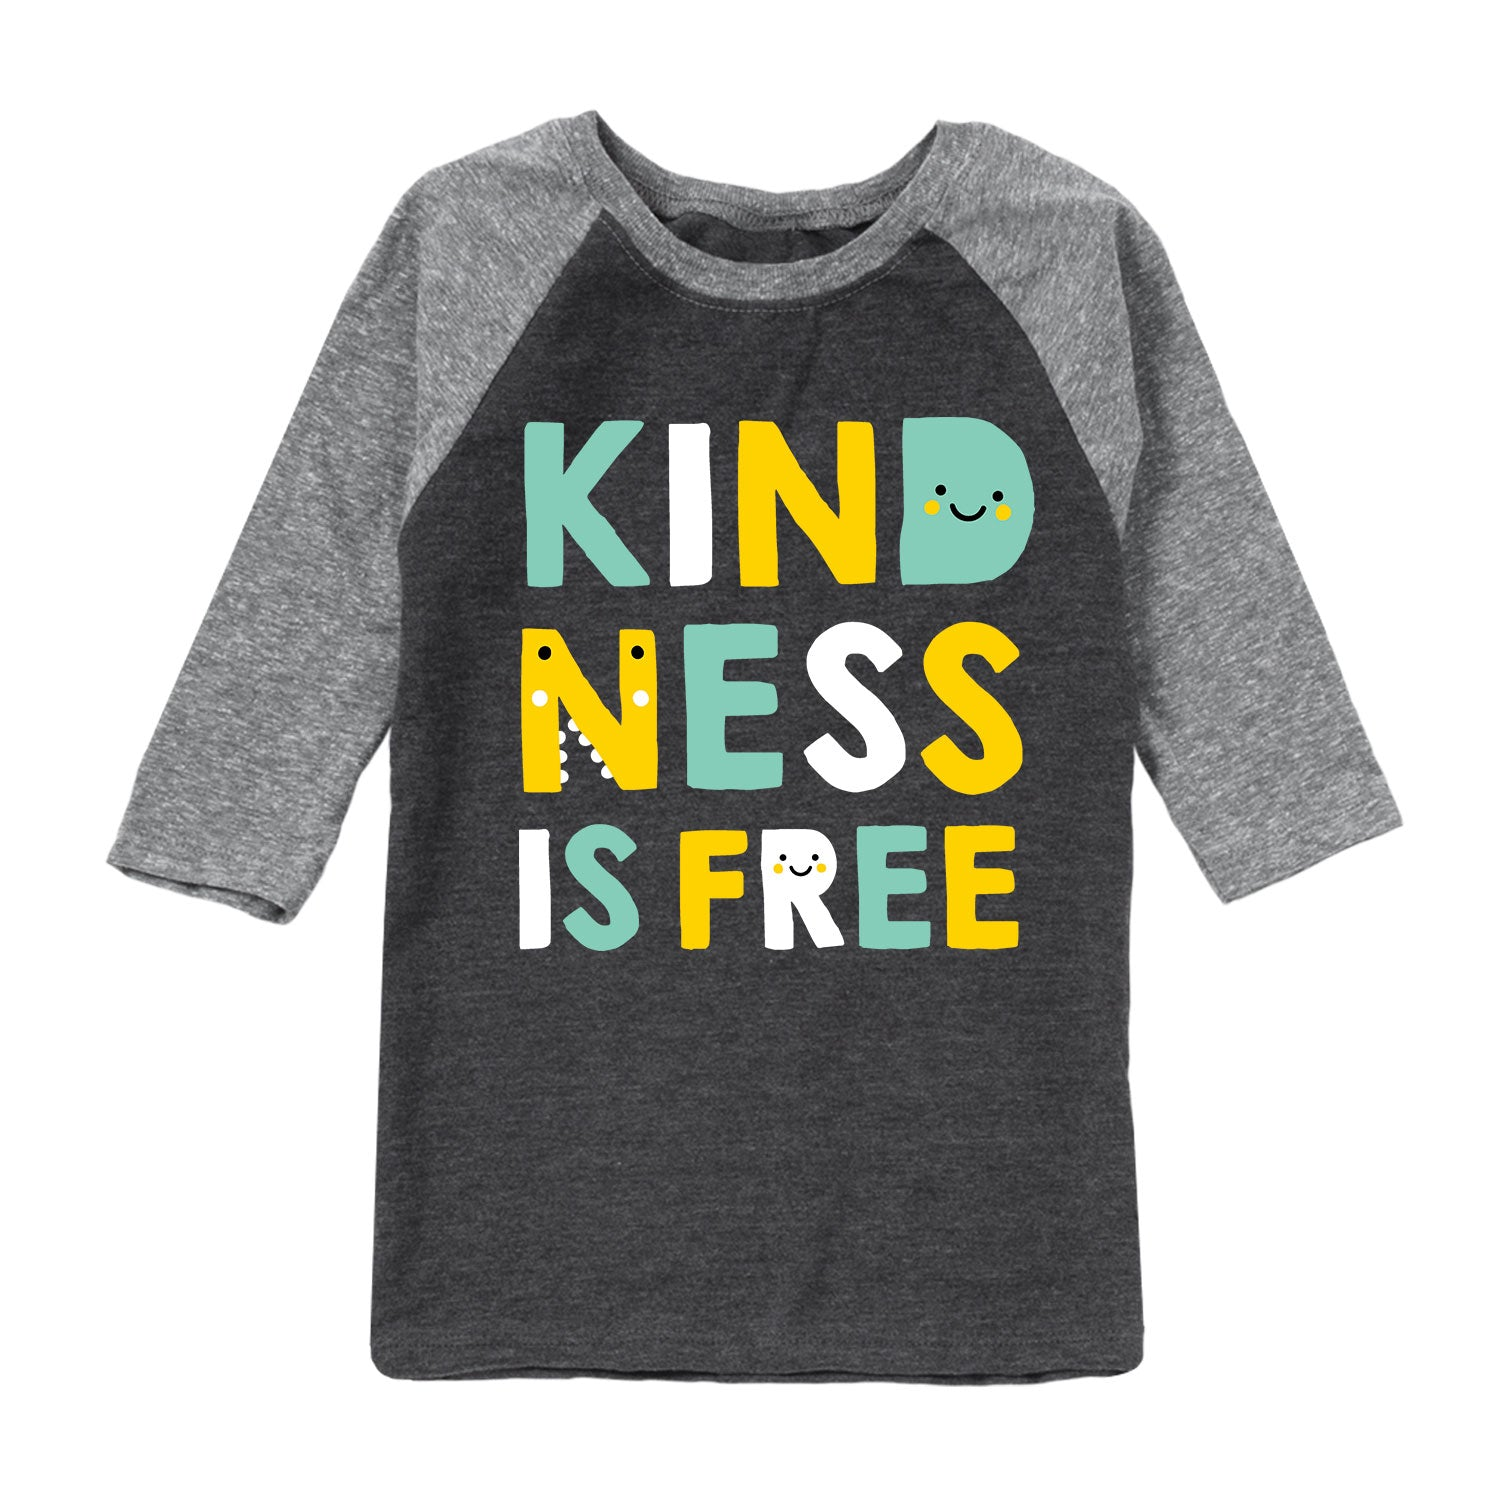 Kindness Is Free - Youth & Toddler Raglan